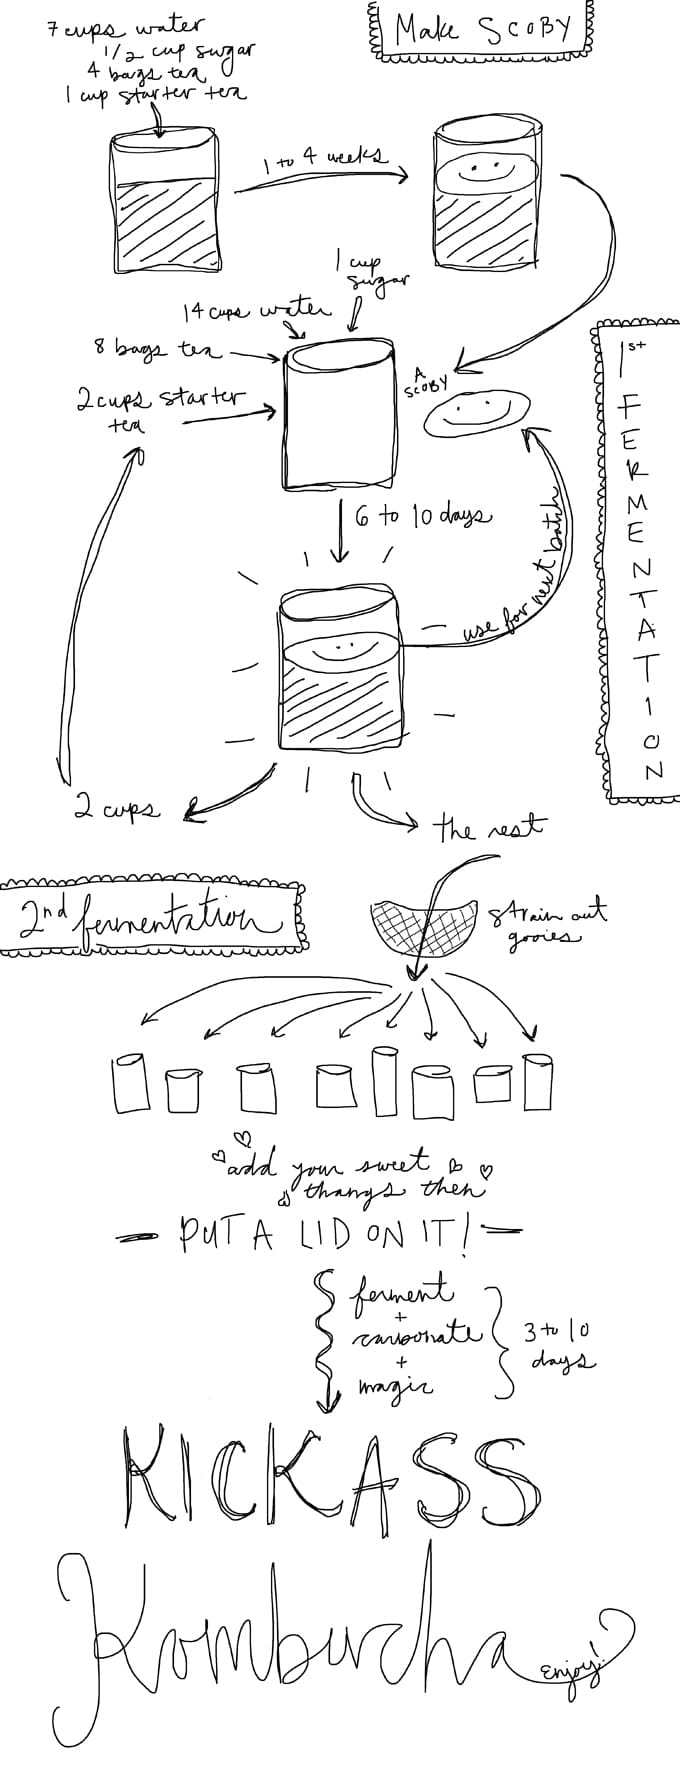 How to make homemade kombucha recipe diagram